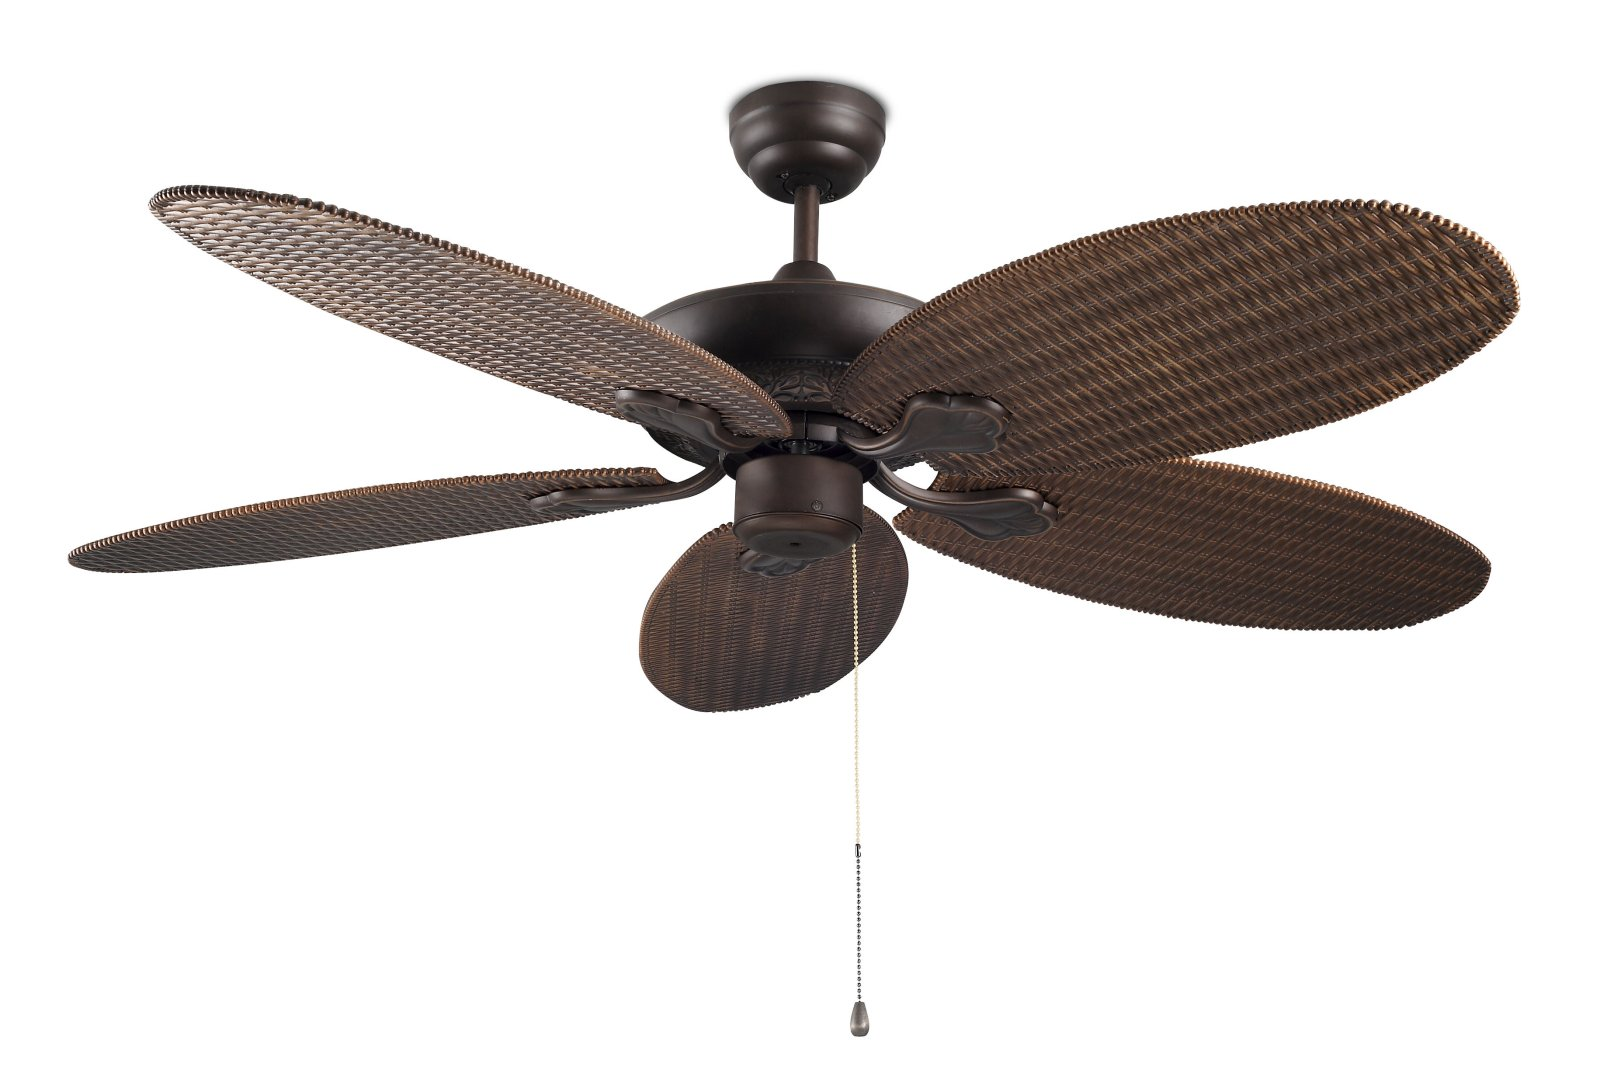 Rattan style ceiling fan no light Ceiling fans no light